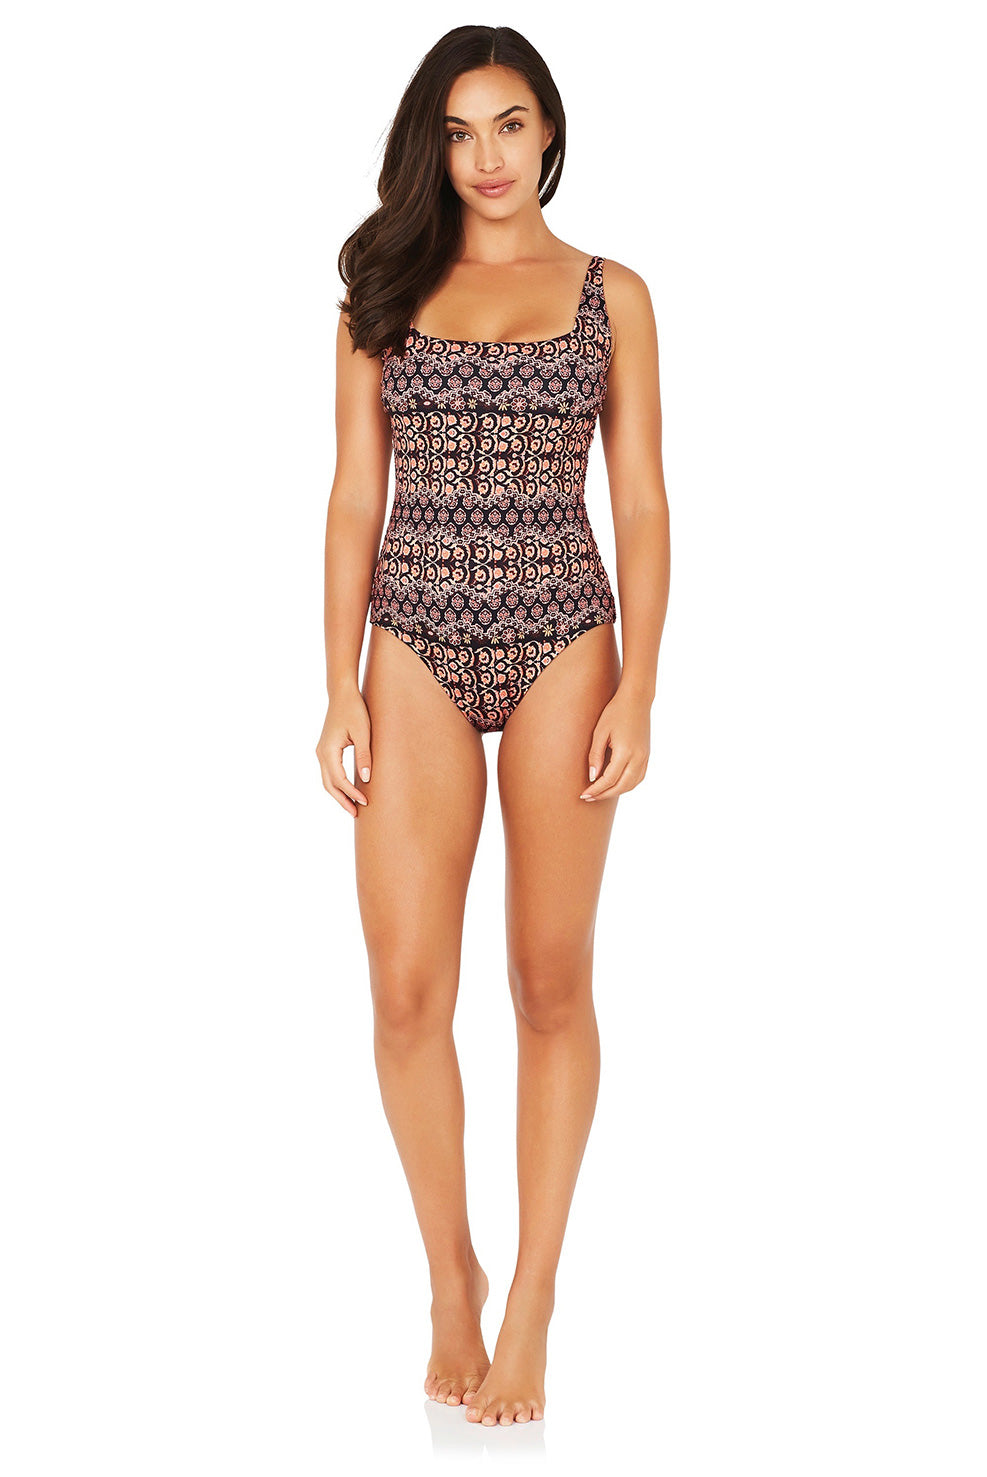 CONSTANTINE D-E UNDERWIRE SQUARE ONE PIECE SWIMSUIT